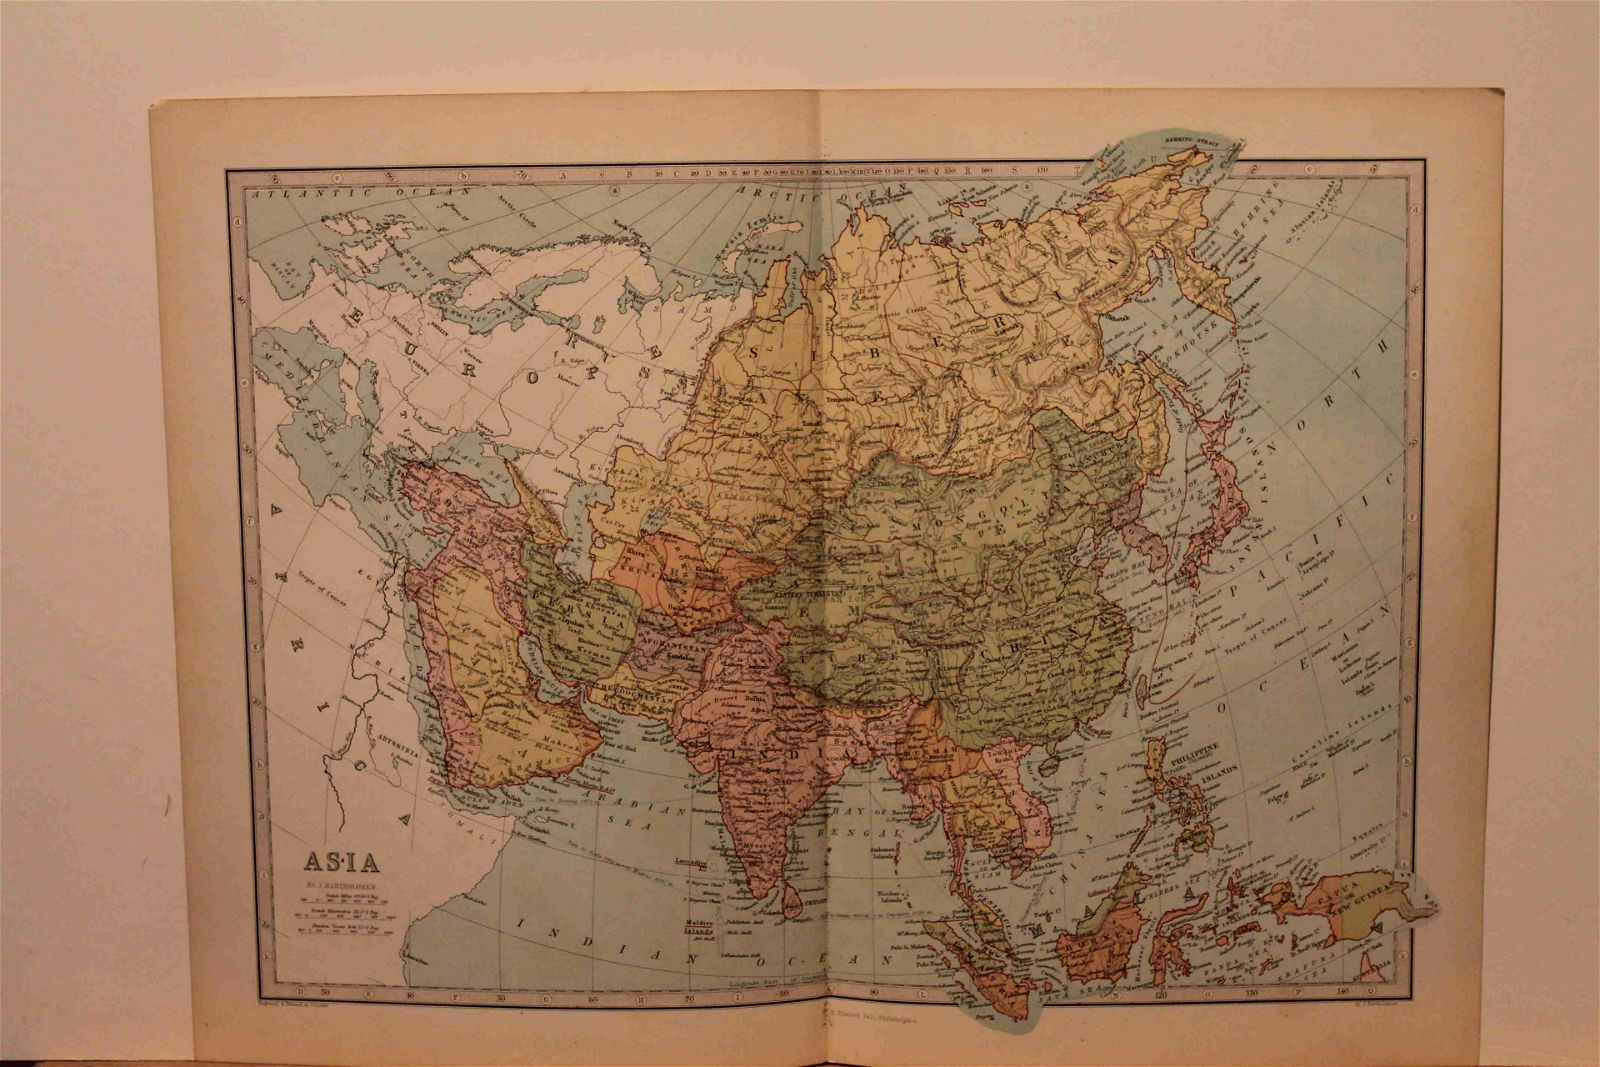 1873 Map of Asia